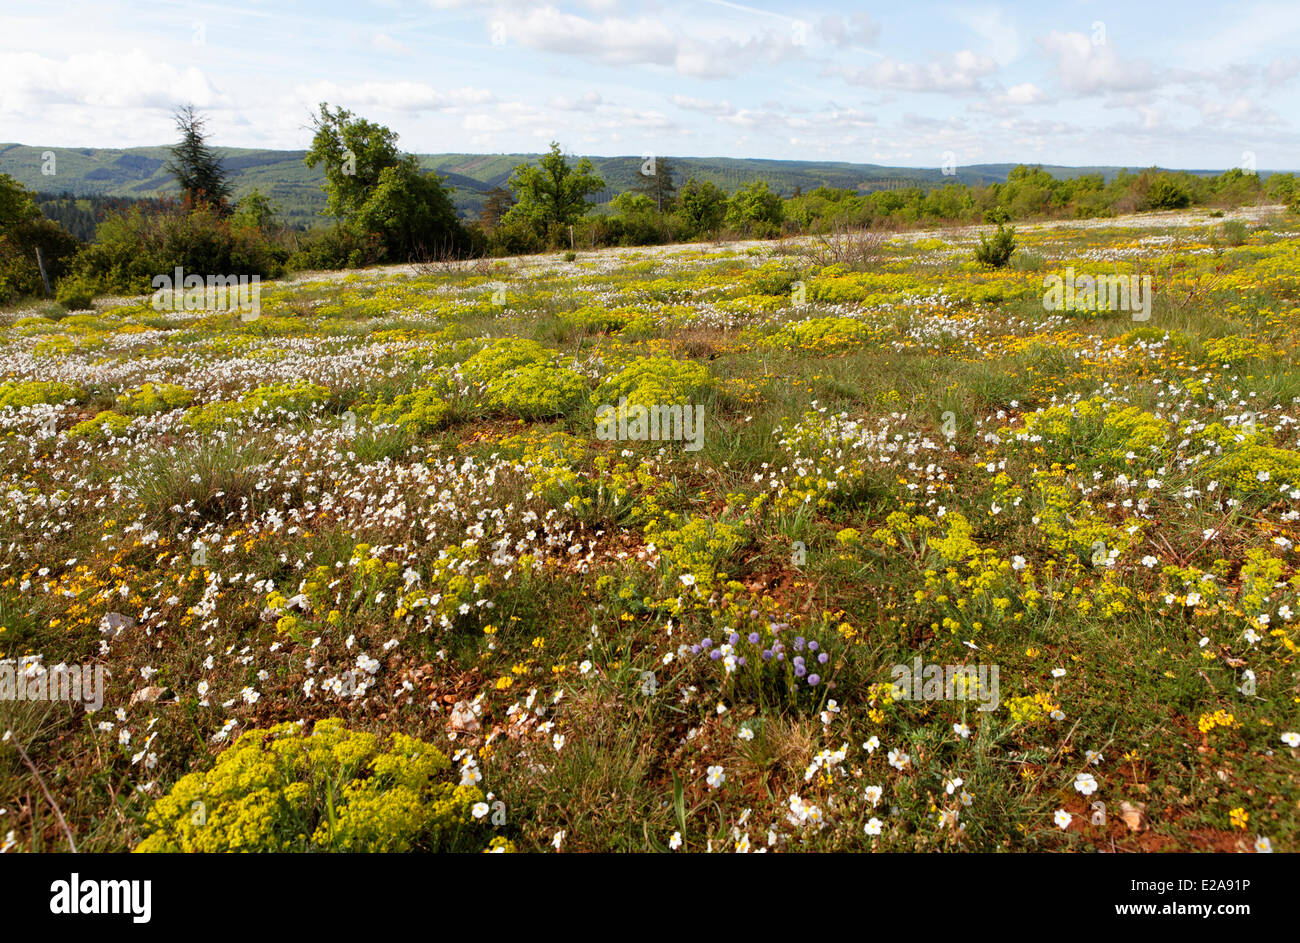 France, Lot, Quercy, Cabrerets, Causse at Spring - Stock Image